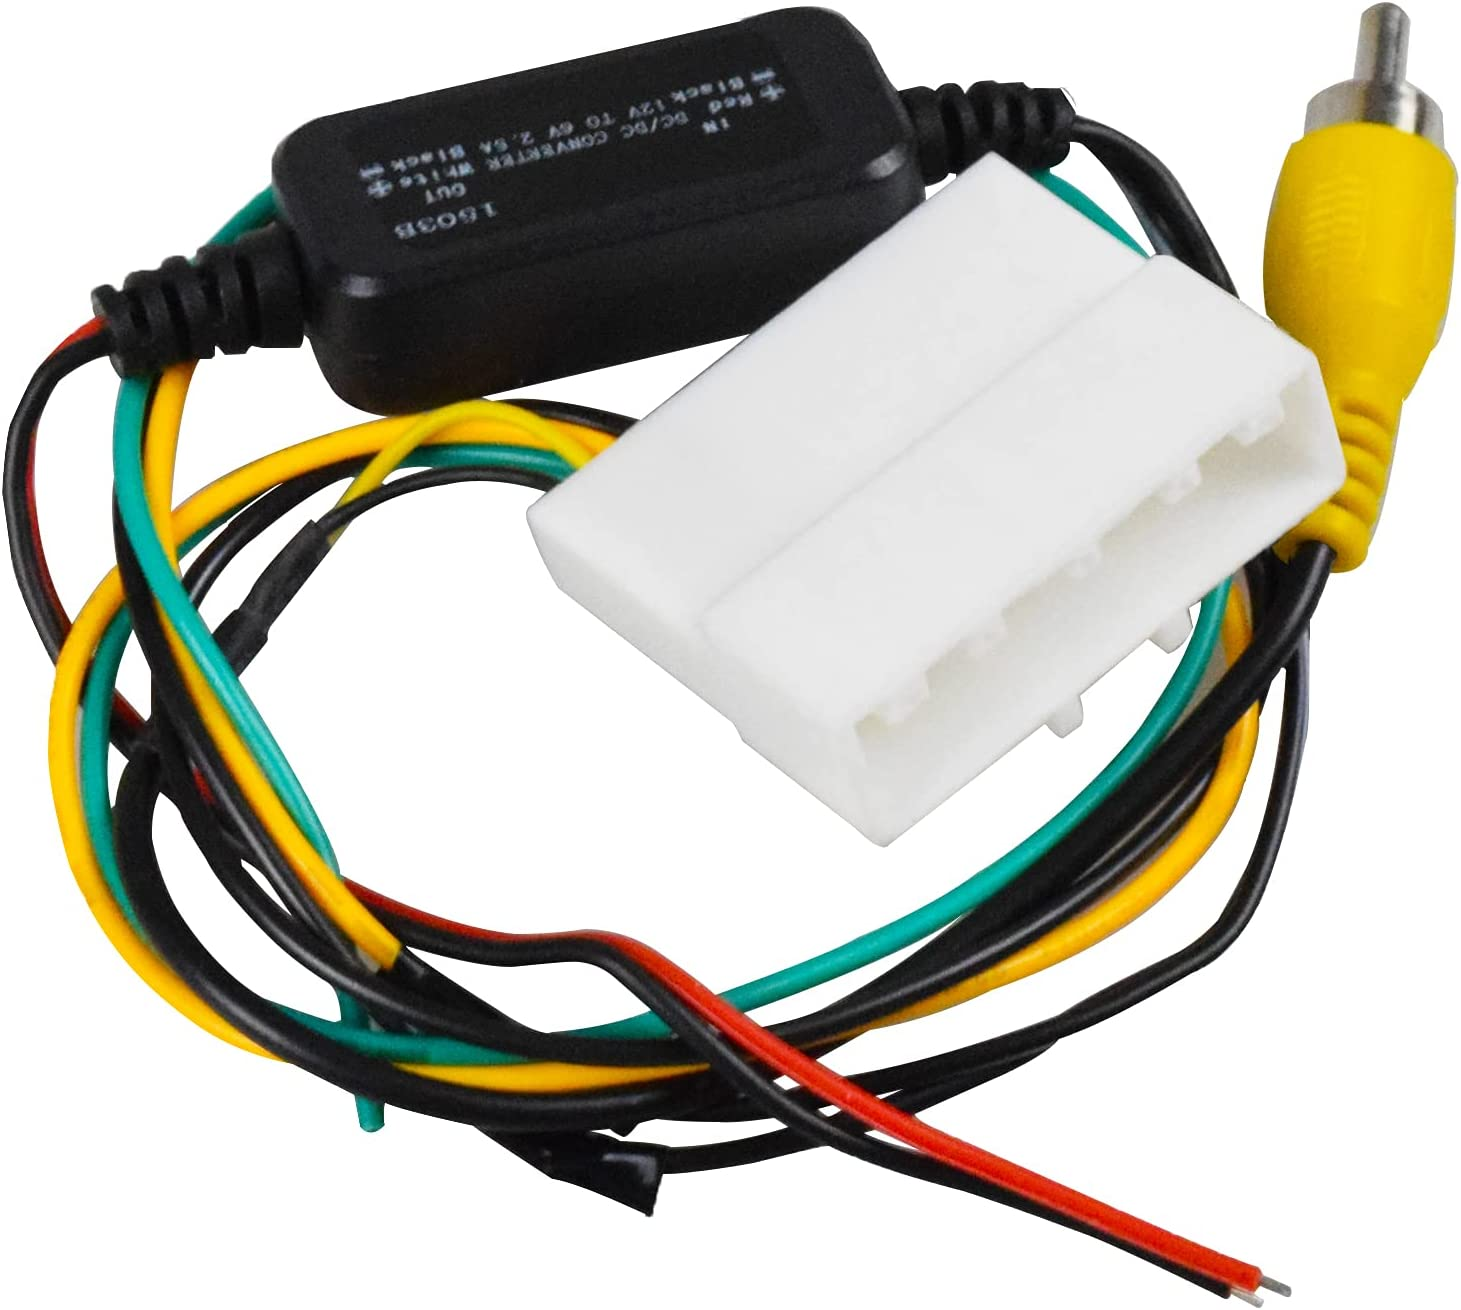 buy backup camera retention wire harness ux-ni006 for nissan altima frontier  juke rogue sentra cube murano quest leaf titan,includes 12v to 6v converter  online in indonesia. b091yk4lz9  indonesia